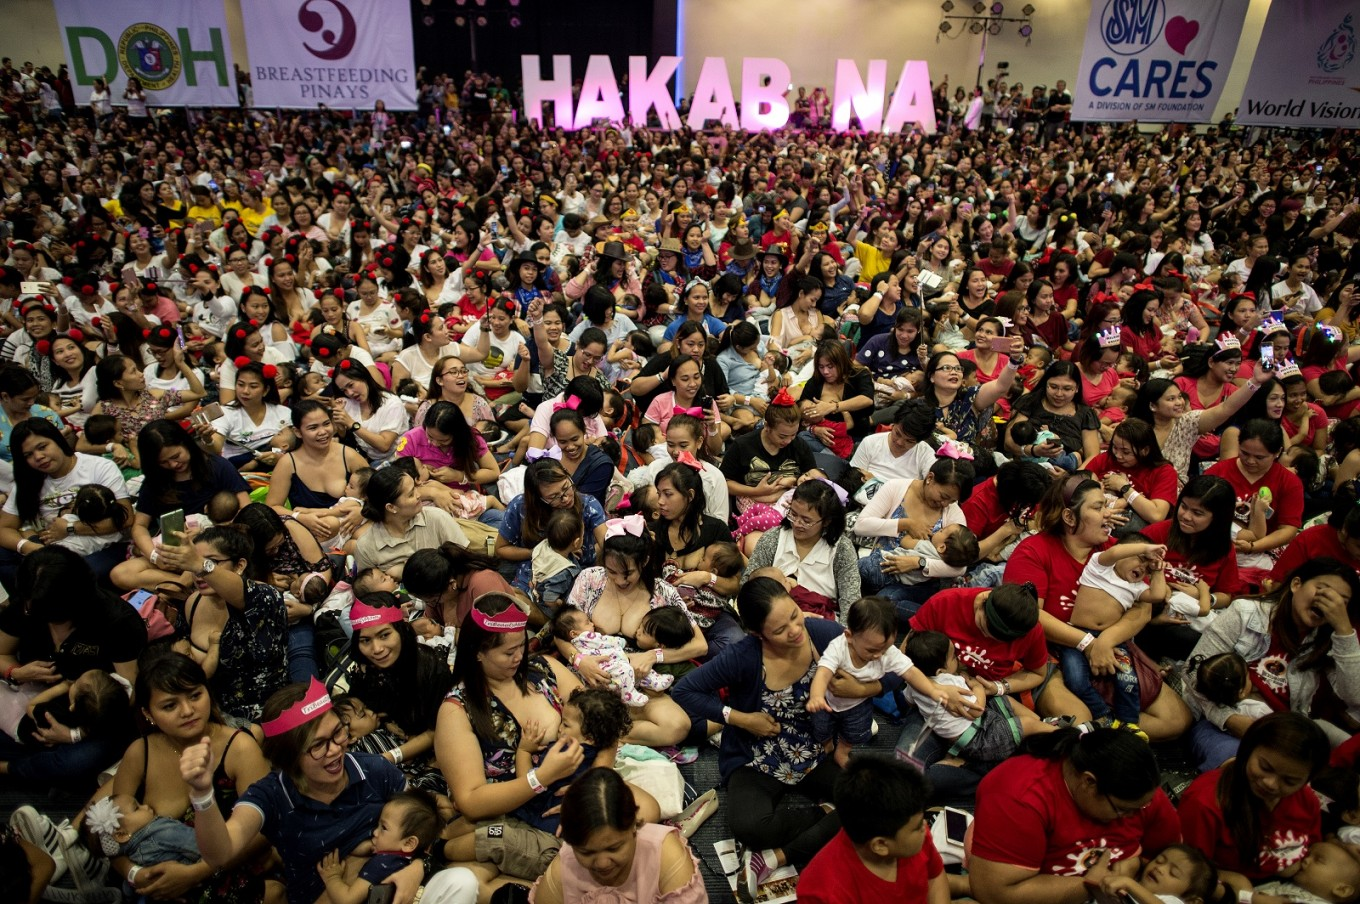 Mothers participate in a breastfeeding event in Manila on August 5, 2018. Hundreds of Philippine mothers simultaneously nursed their babies in public on Sunday, some of them two at a time, in a government-backed mass breastfeeding event aimed at combating child deaths. Image: AFP/Noel Celis